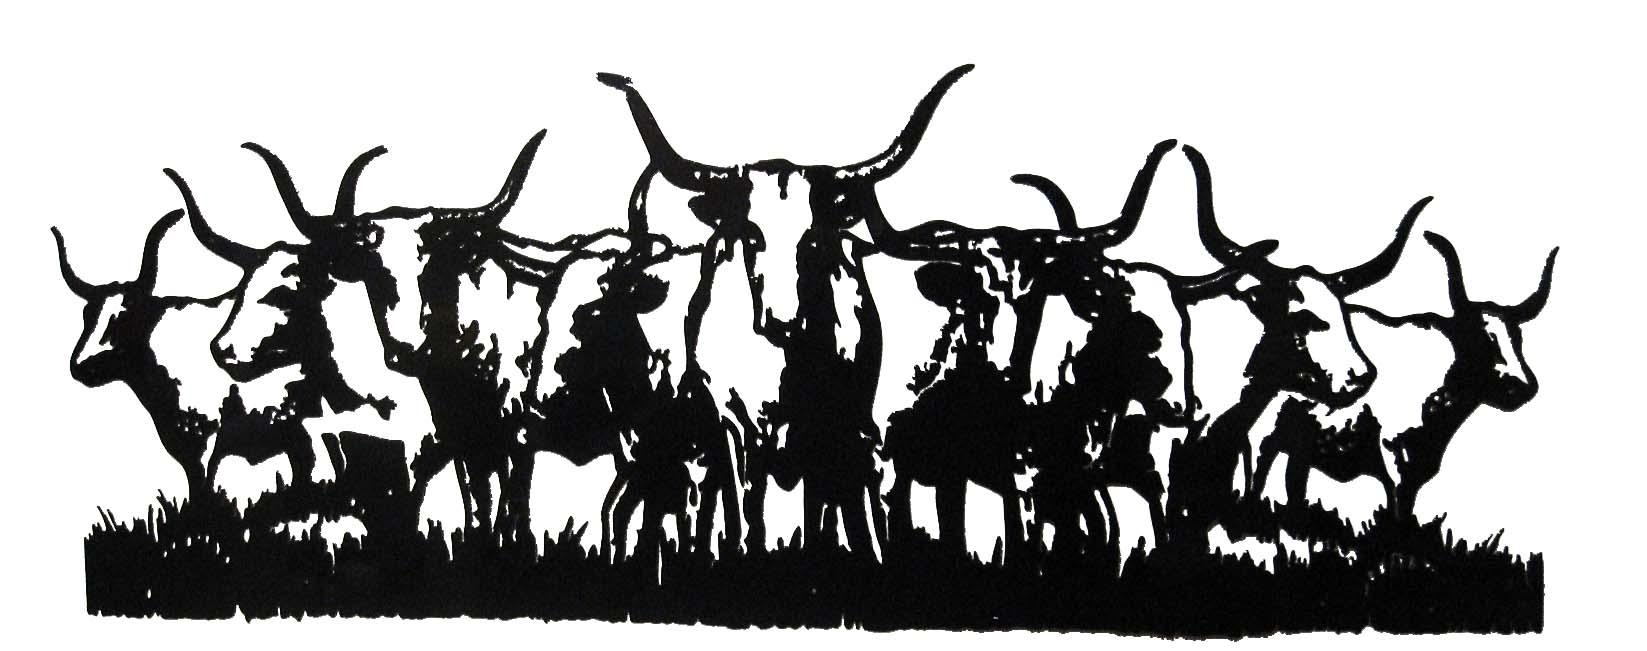 Wall Art Ideas Design : Long Horn Western Metal Wall Art Majestic With Western Metal Wall Art Silhouettes (View 1 of 20)